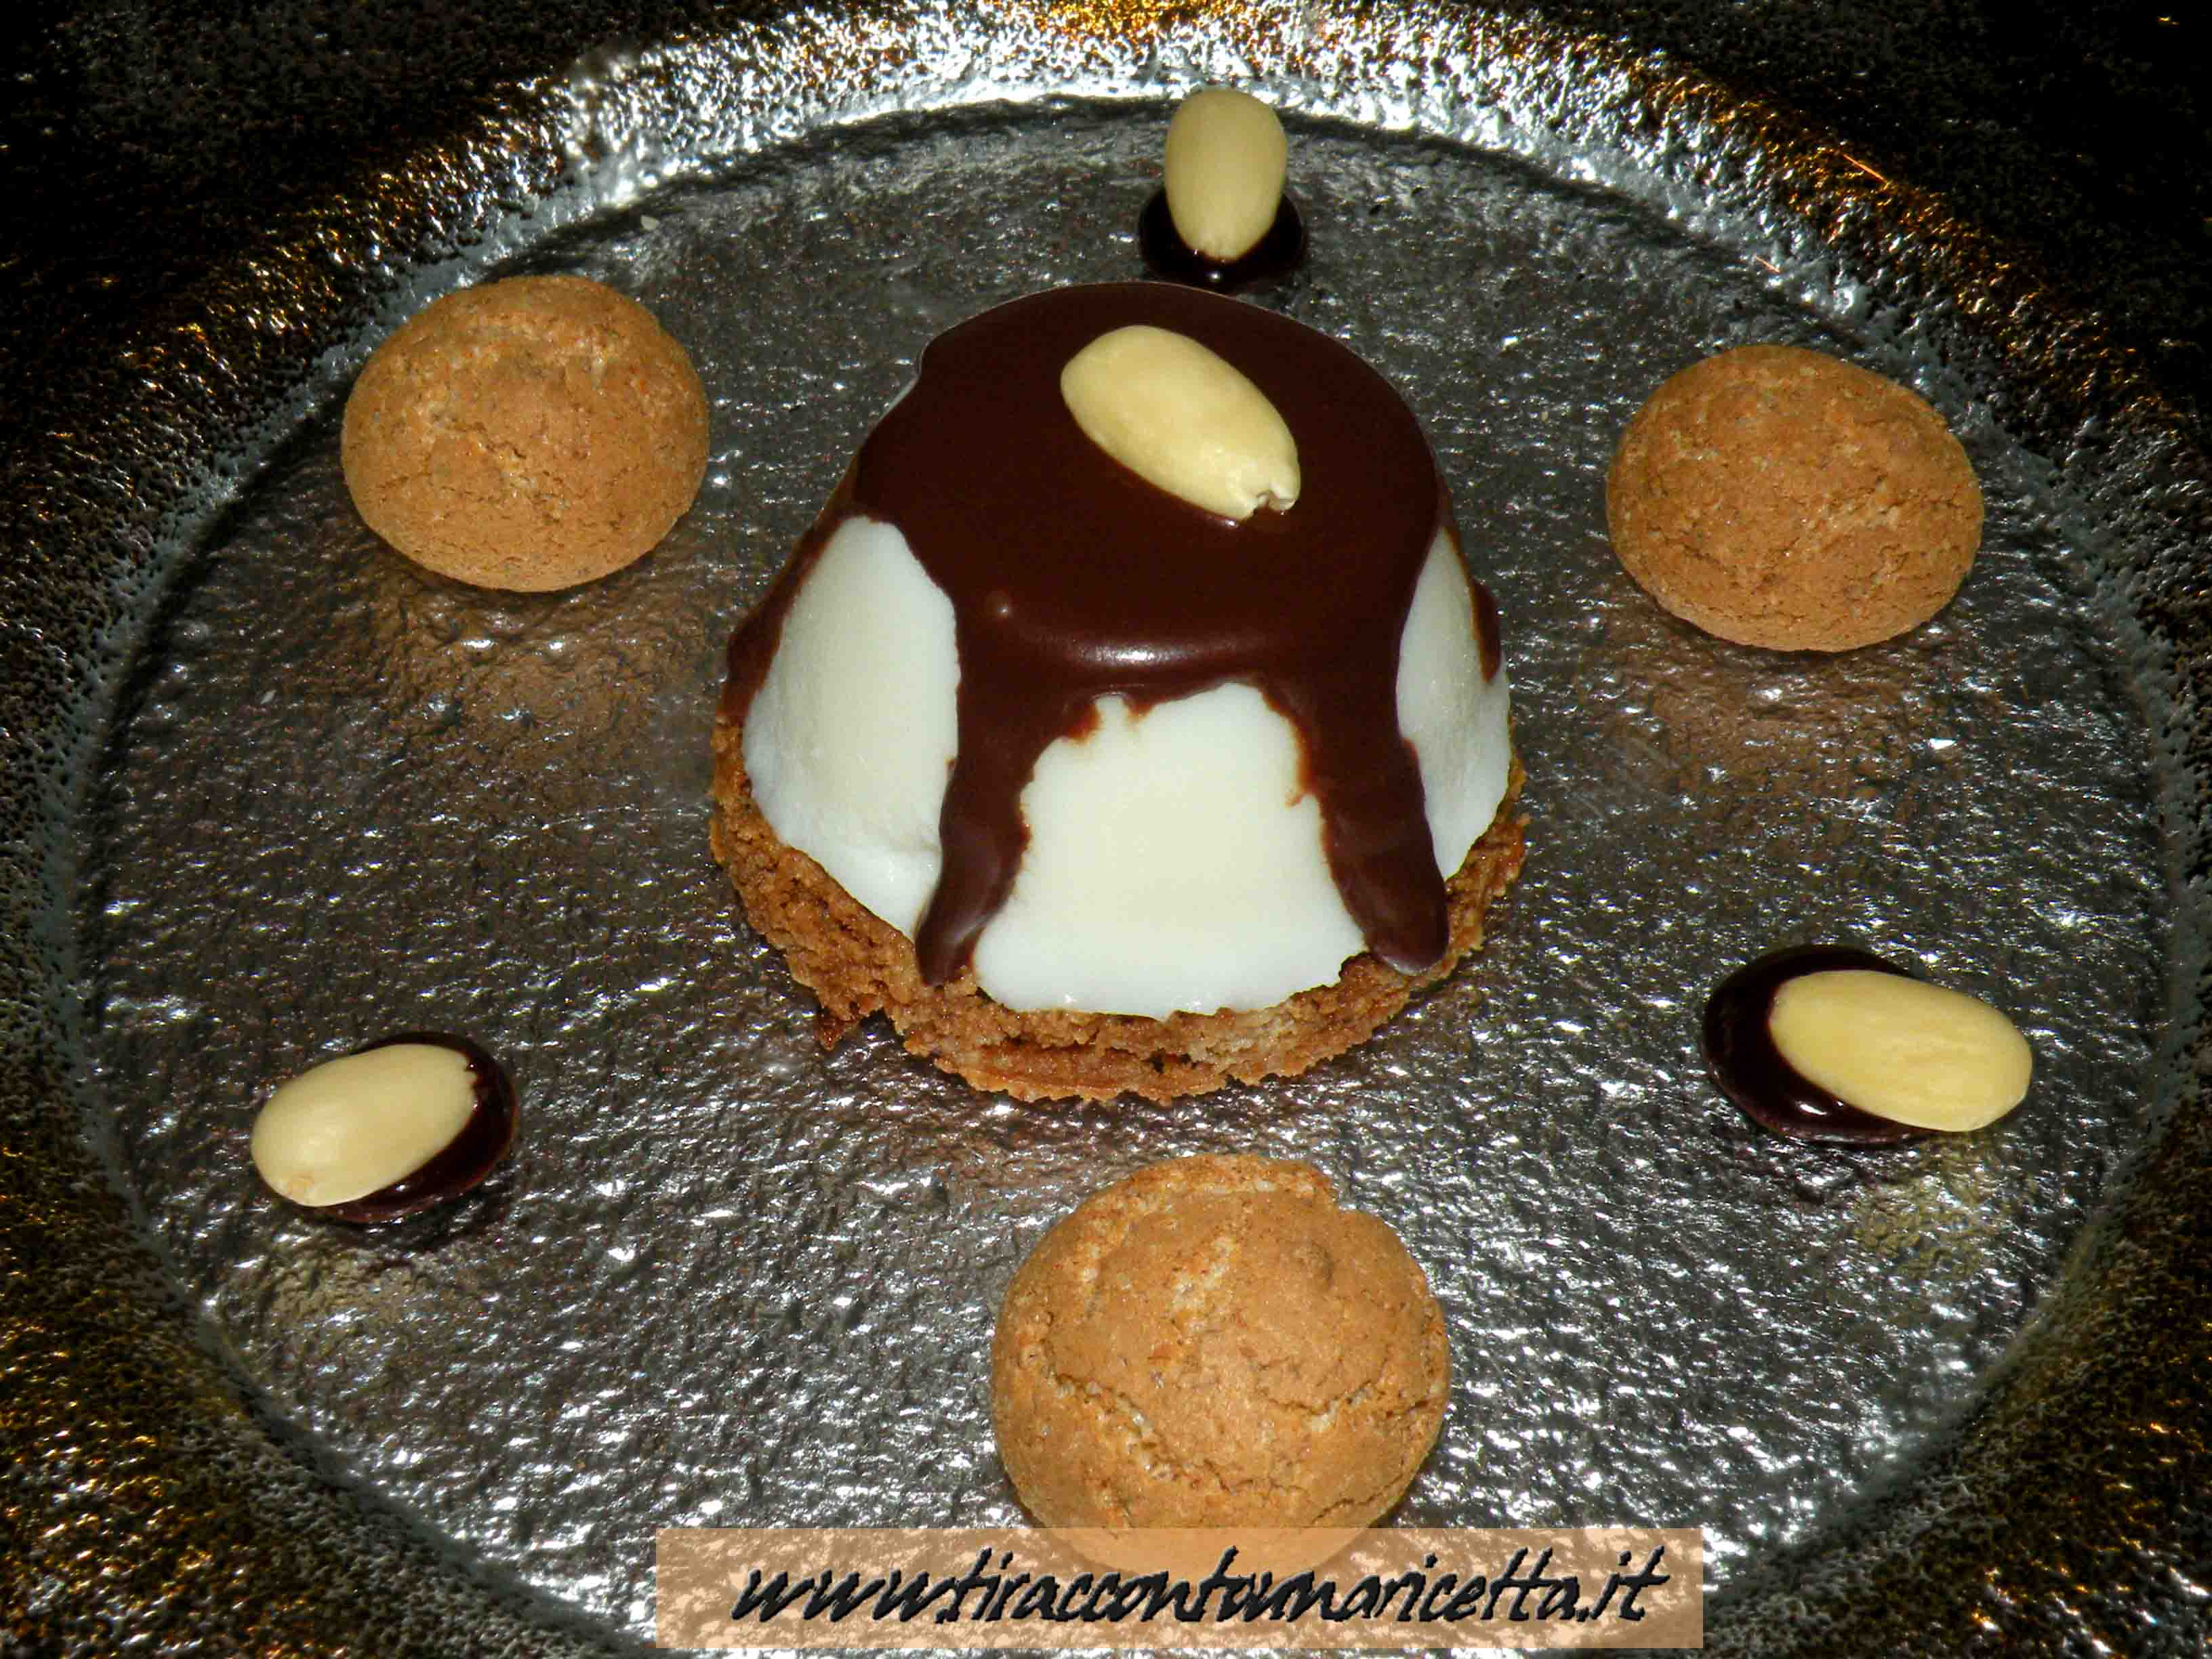 Panna cotta with crunchy amaretti and chocolate